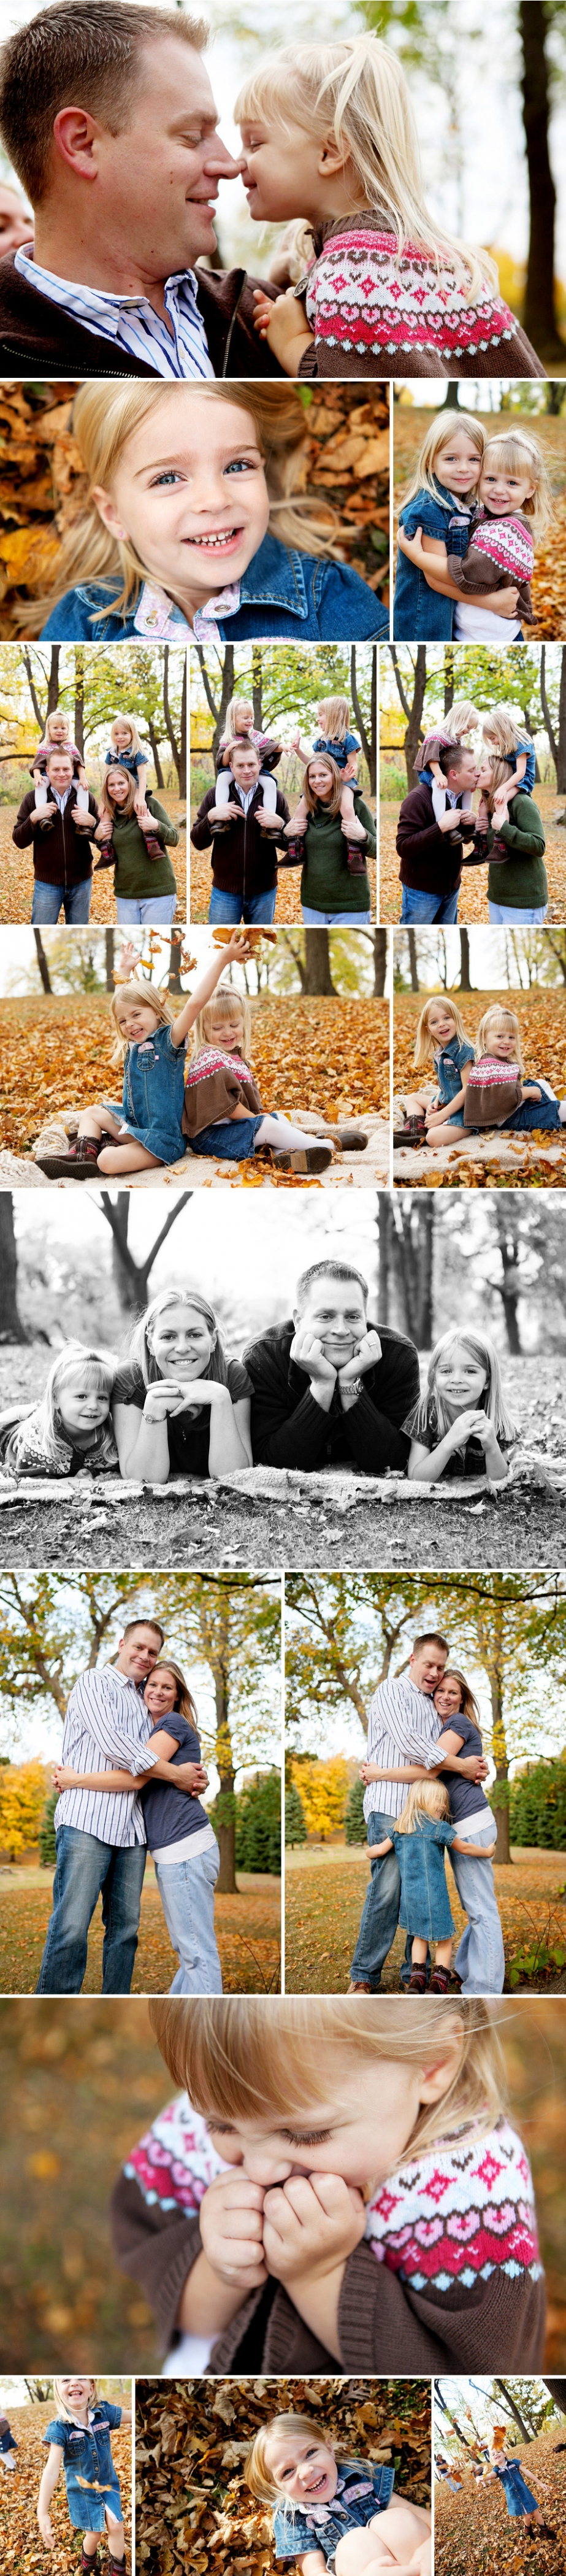 fall family photos